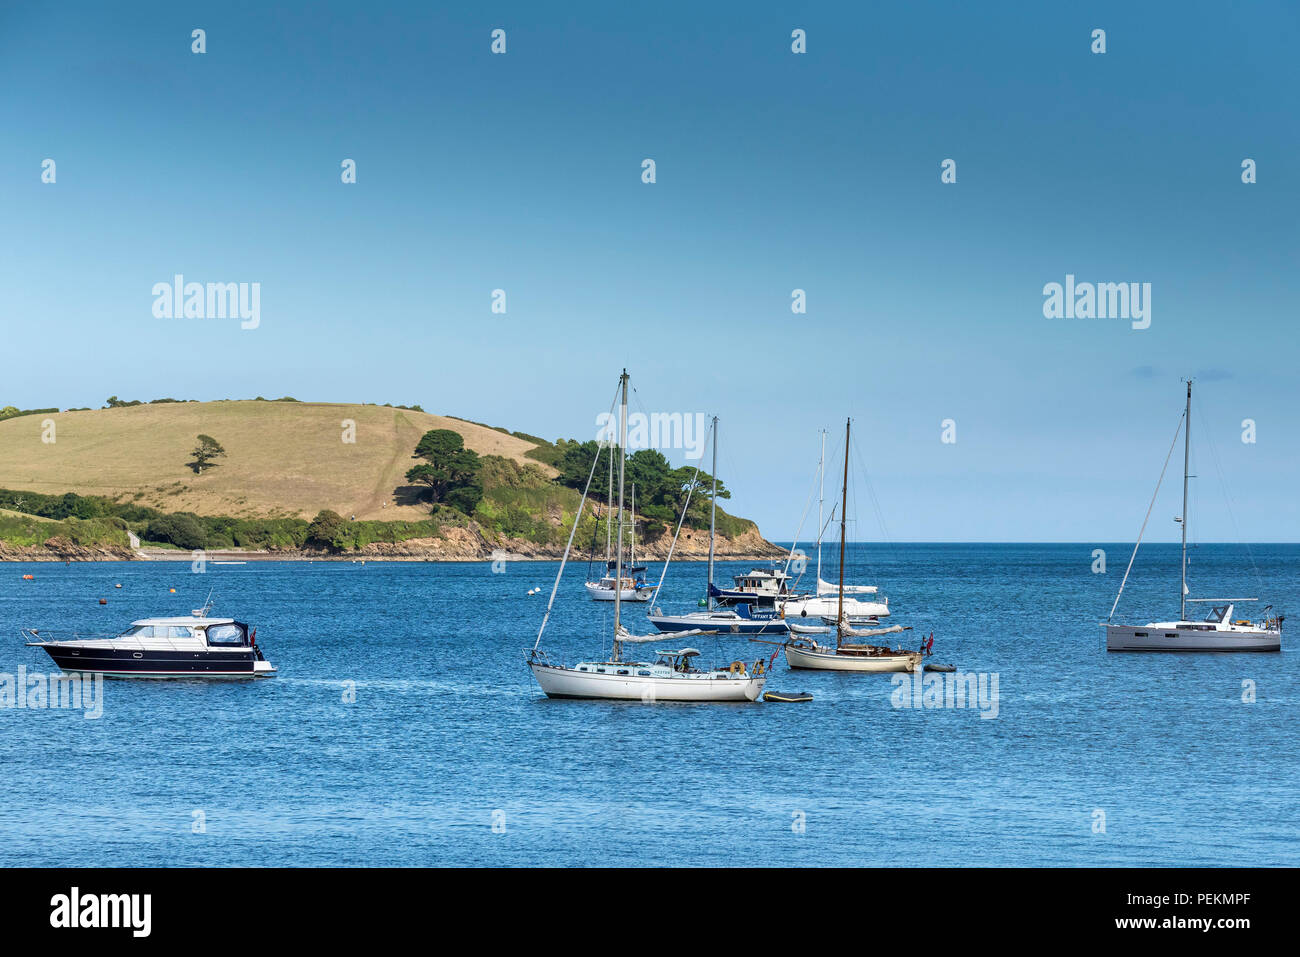 Sail boats yachts motor boats crusiers moored in Polgwidden Cove on the Helford River in Cornwall. - Stock Image